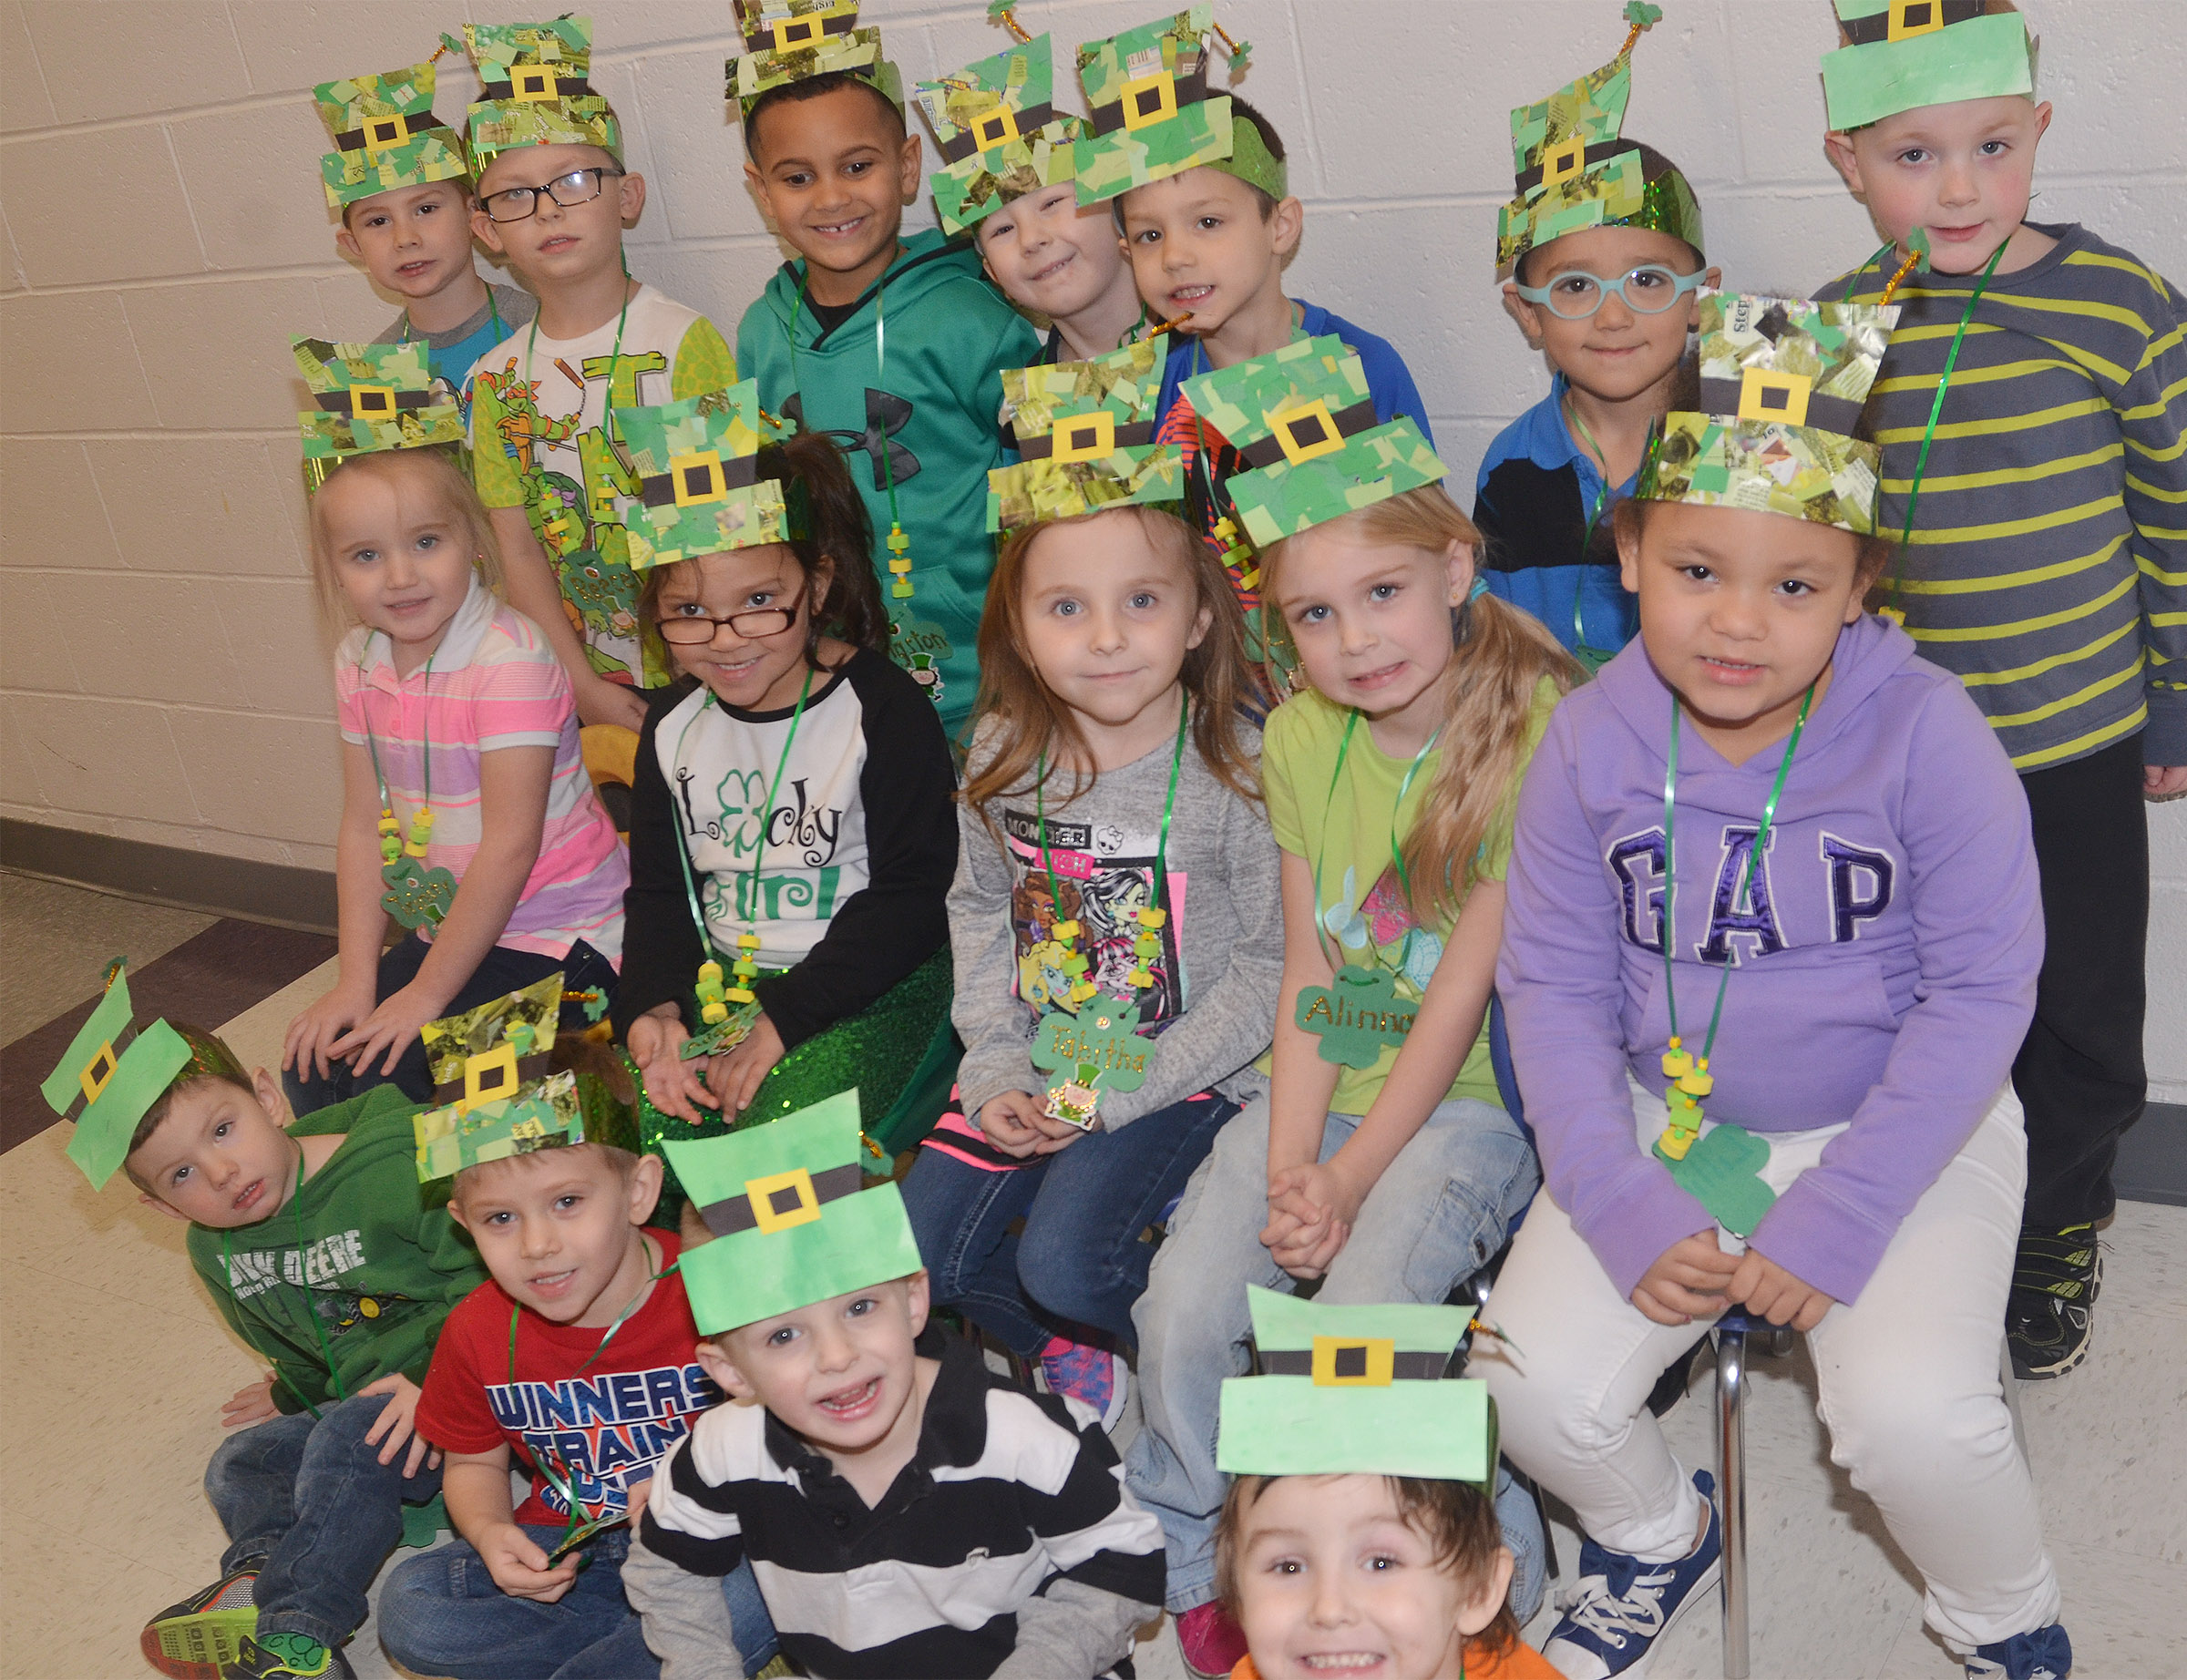 CES preschool students in Sherry Cowherd's class wear their St. Patrick's Day hats and necklaces. From left, front, are Chase Arnett, Elijah Russell, Nevon Stum and Noelan McMahan. Second row, Trinity Dye, Addisyn Taylor, Tabitha Leggett, Alinna Bray and Lillian Merriweather. Back, Kennon Dotson, Reece Williams, Kingston Cowherd, Cameron Dean, Levi Ritchie, Chanler Mann and Anthony McClure.